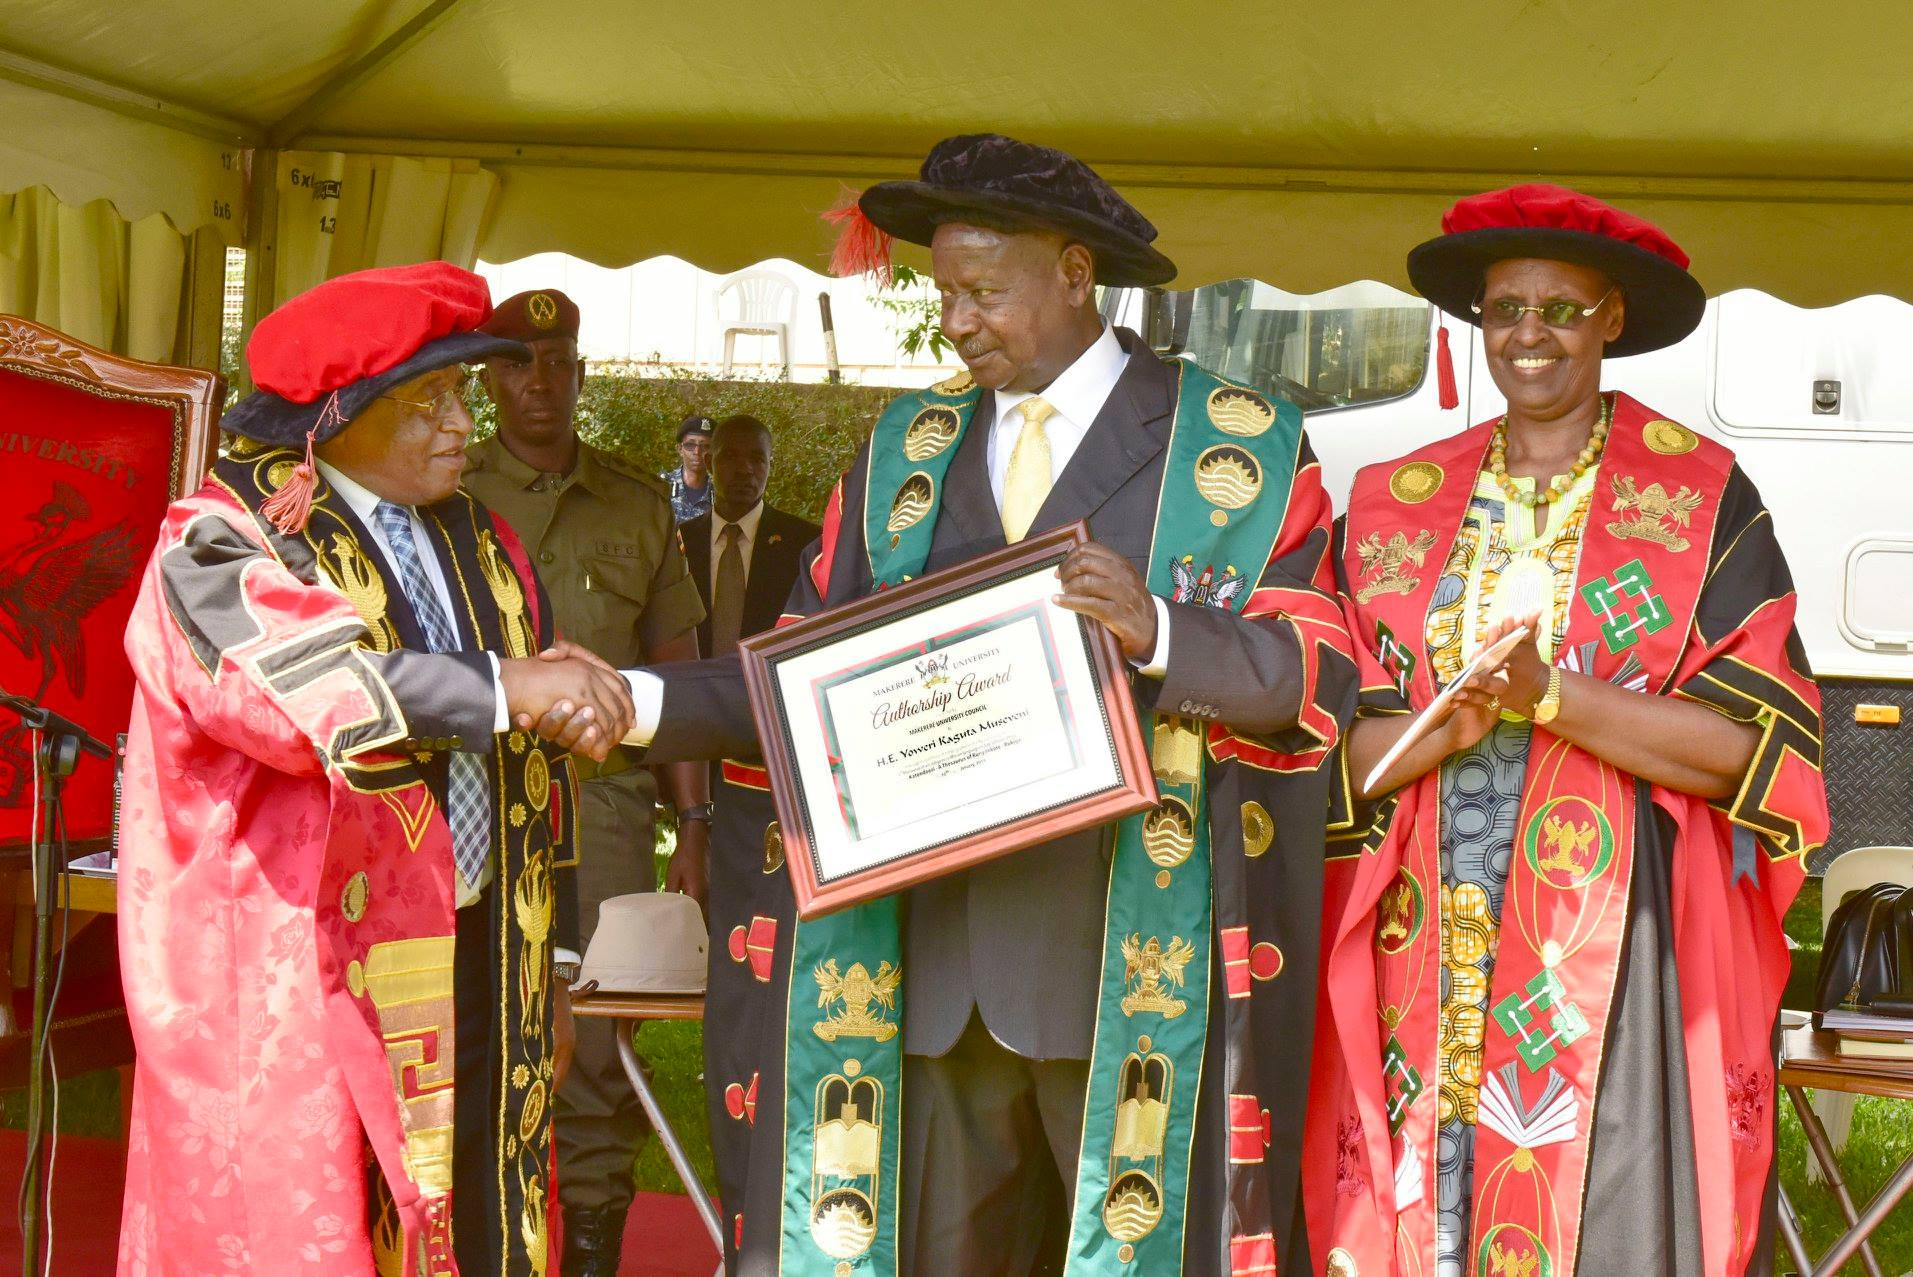 President Museveni receives an honour for authoring the Runyankore dictionary at the 69th Makerere University Graduation ceremony Tuesday Jan 15 (PPU PHOTO)